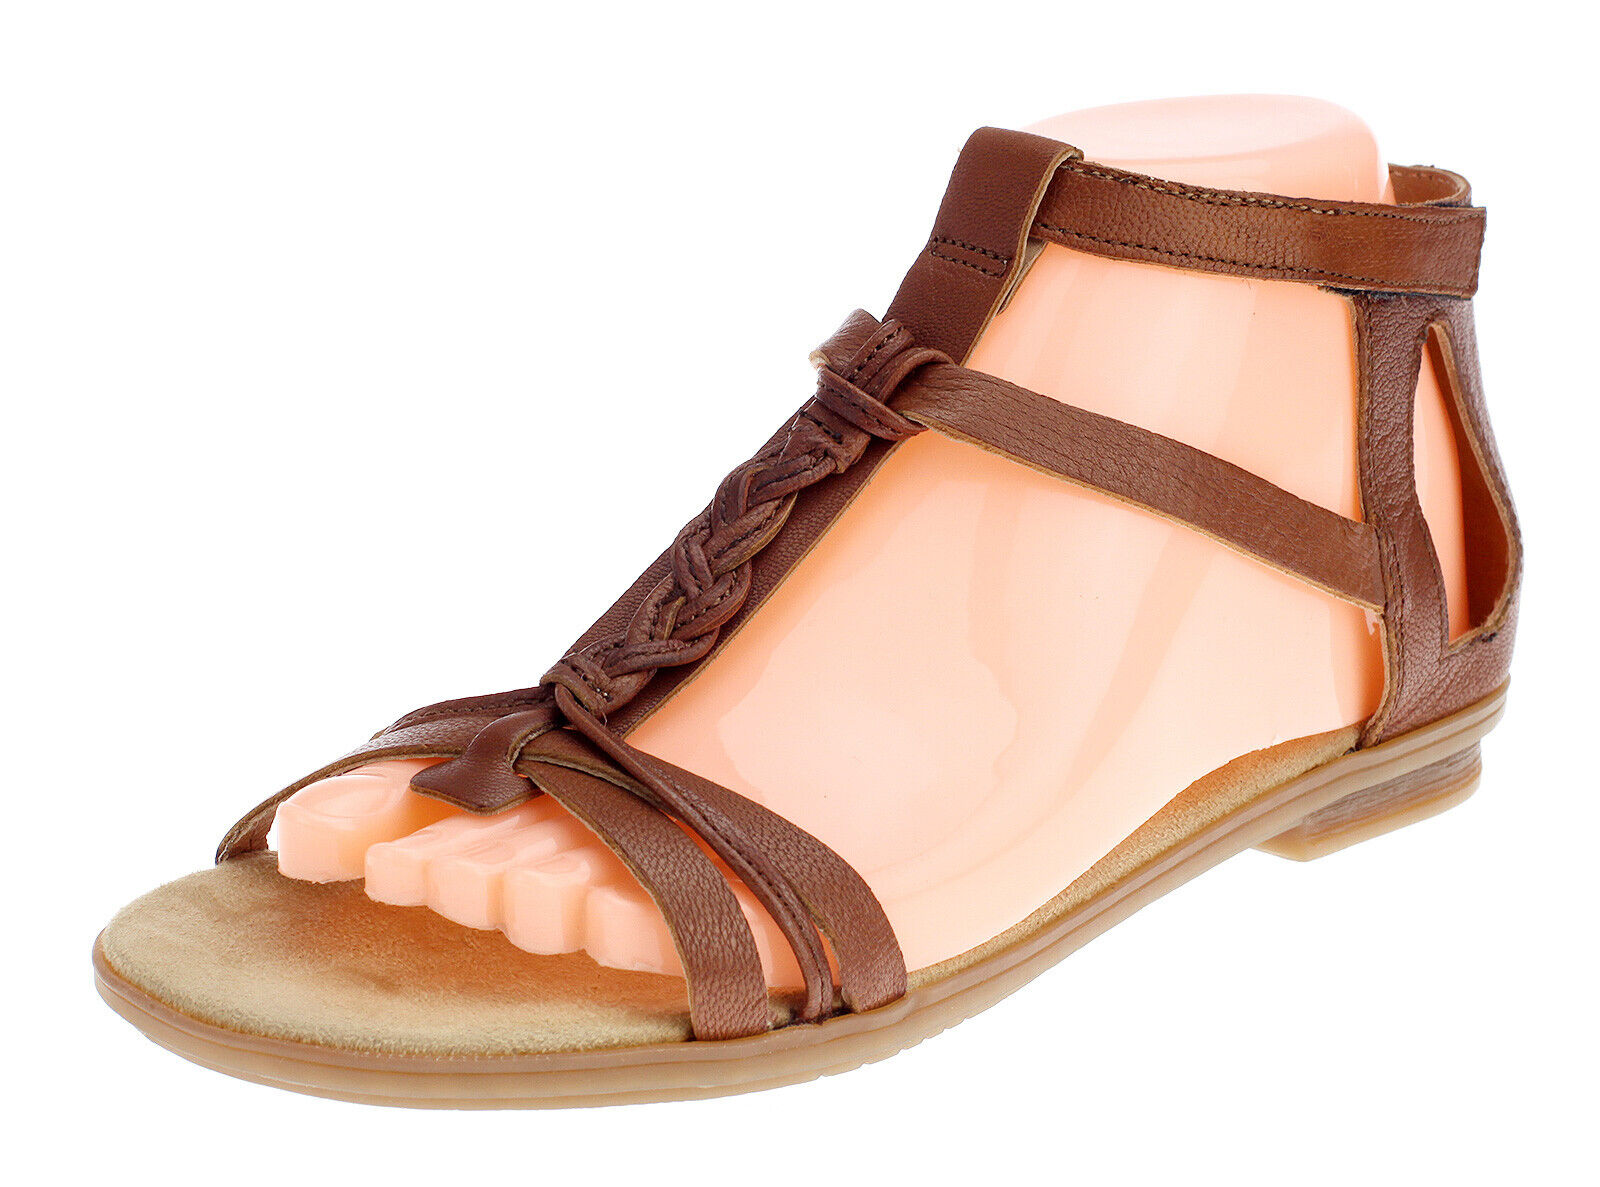 Rieker Seali Donna Rouomoi Seali Casual Gladiator Seali Piatto 64225-24